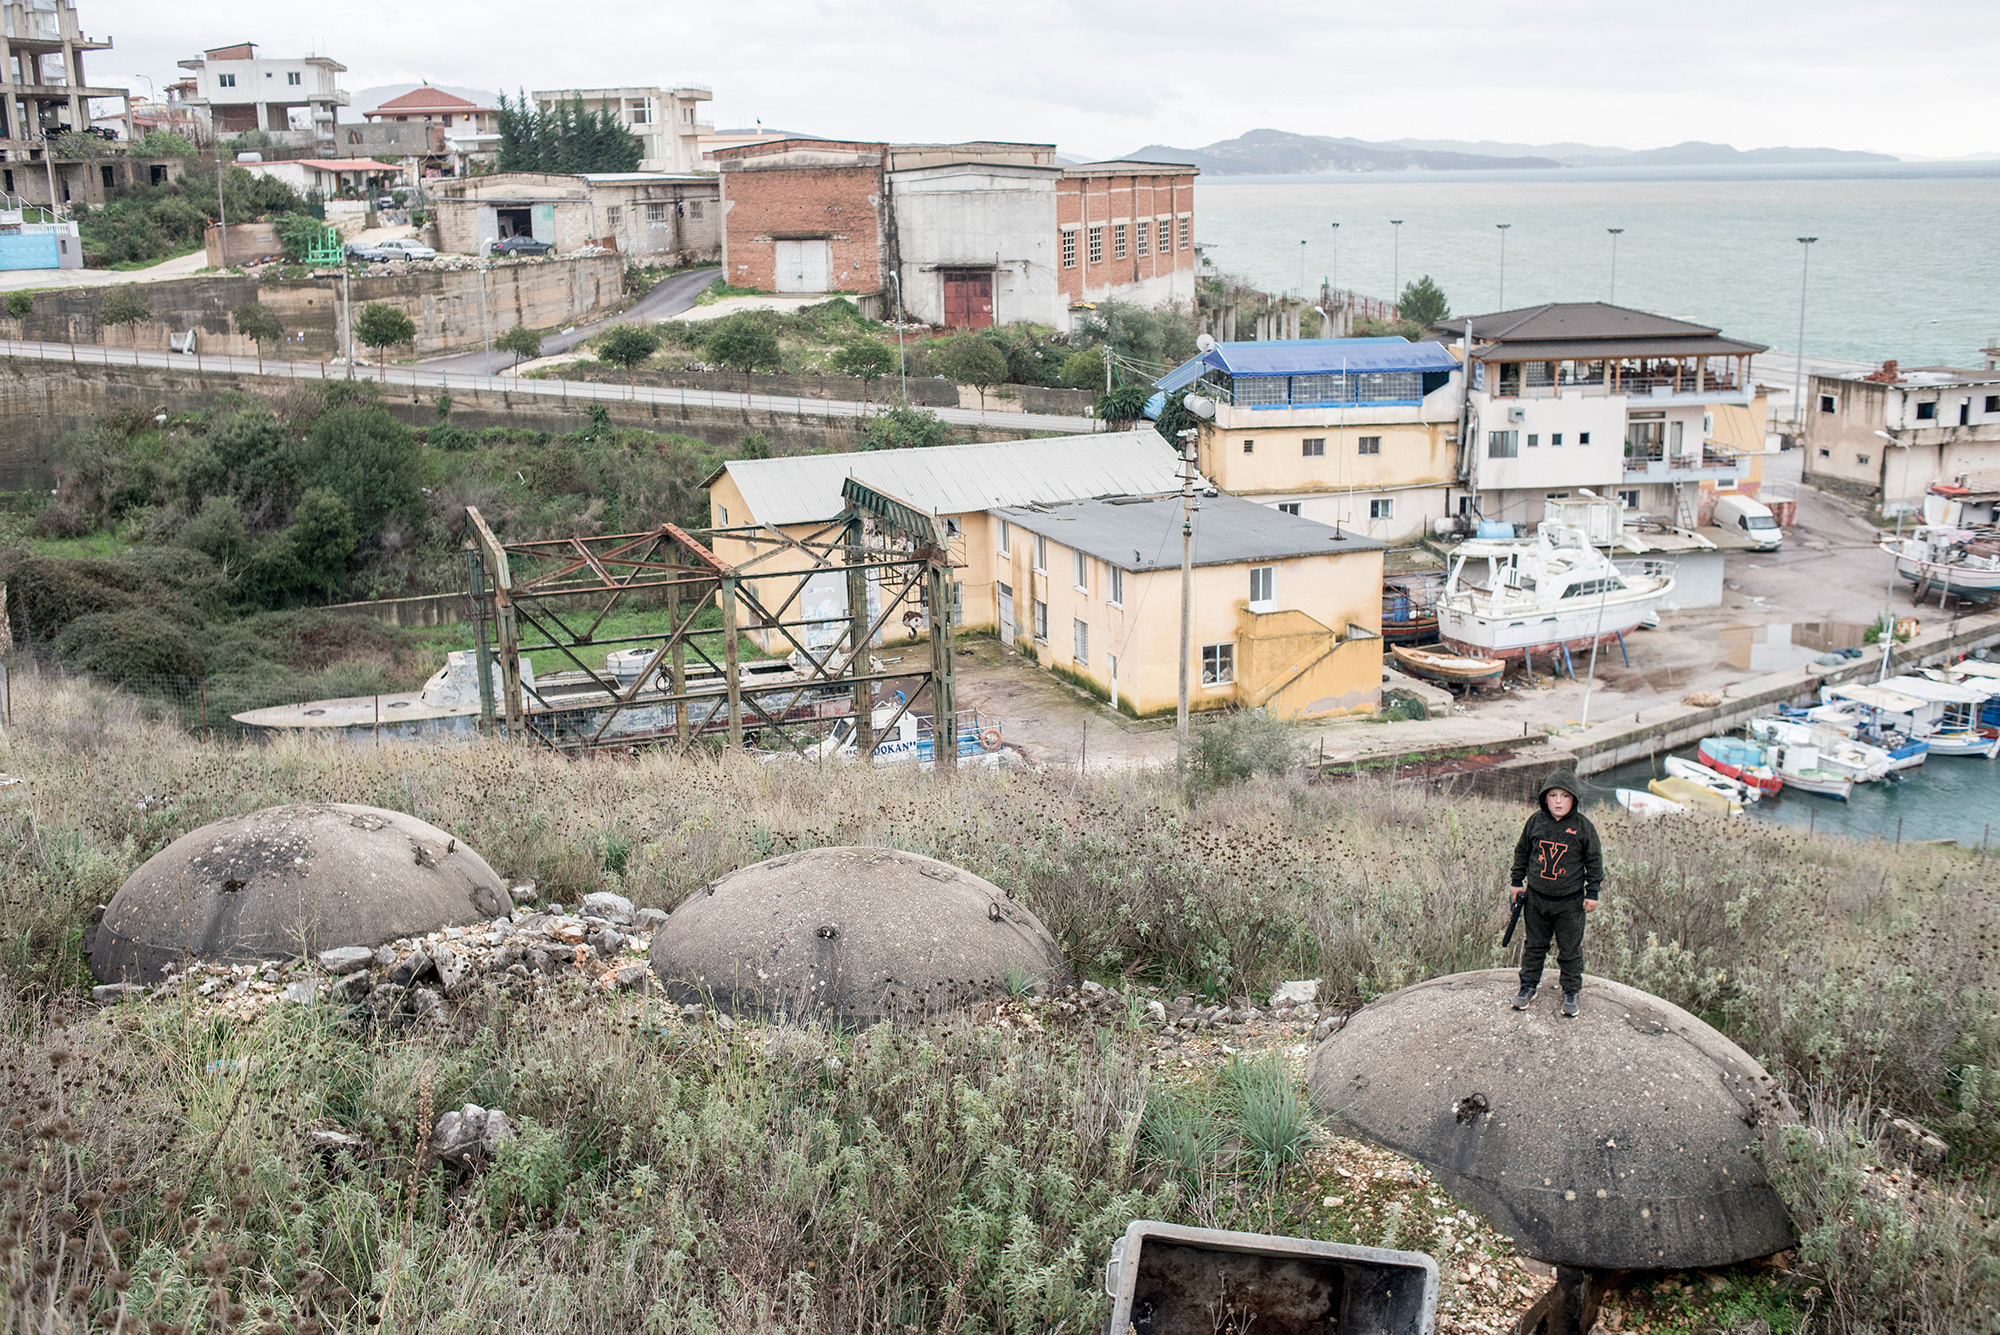 A boy with a toy gun stands on a bunker near the port, Saranda, Albania